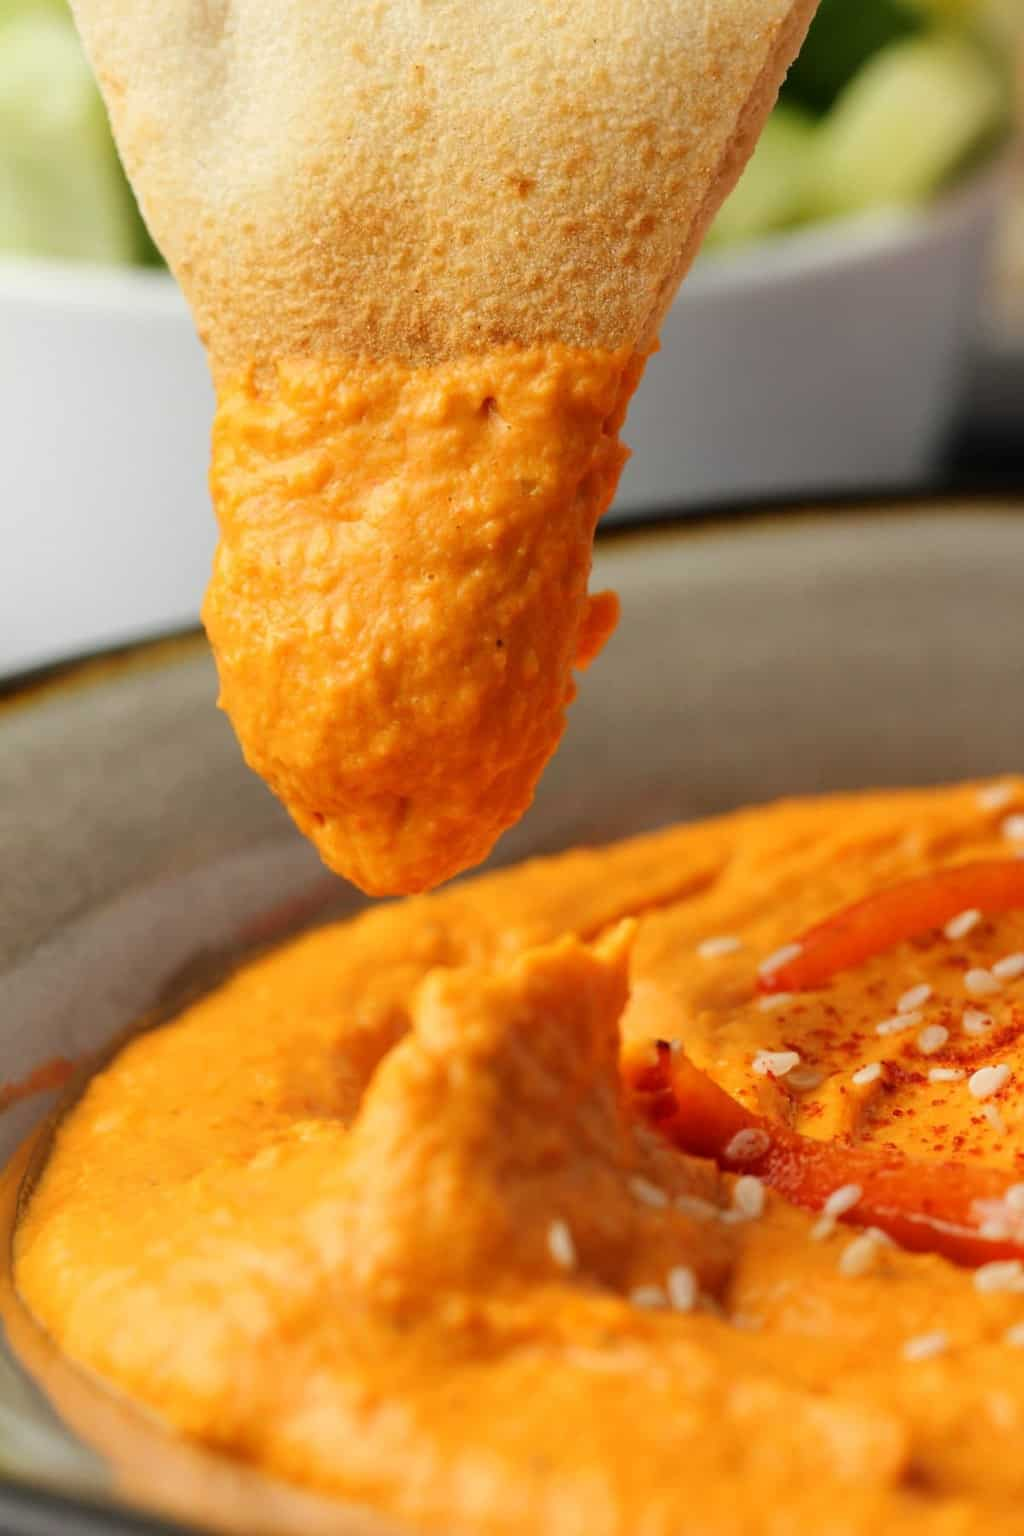 Pita bread dipping into a bowl of roasted red pepper hummus.